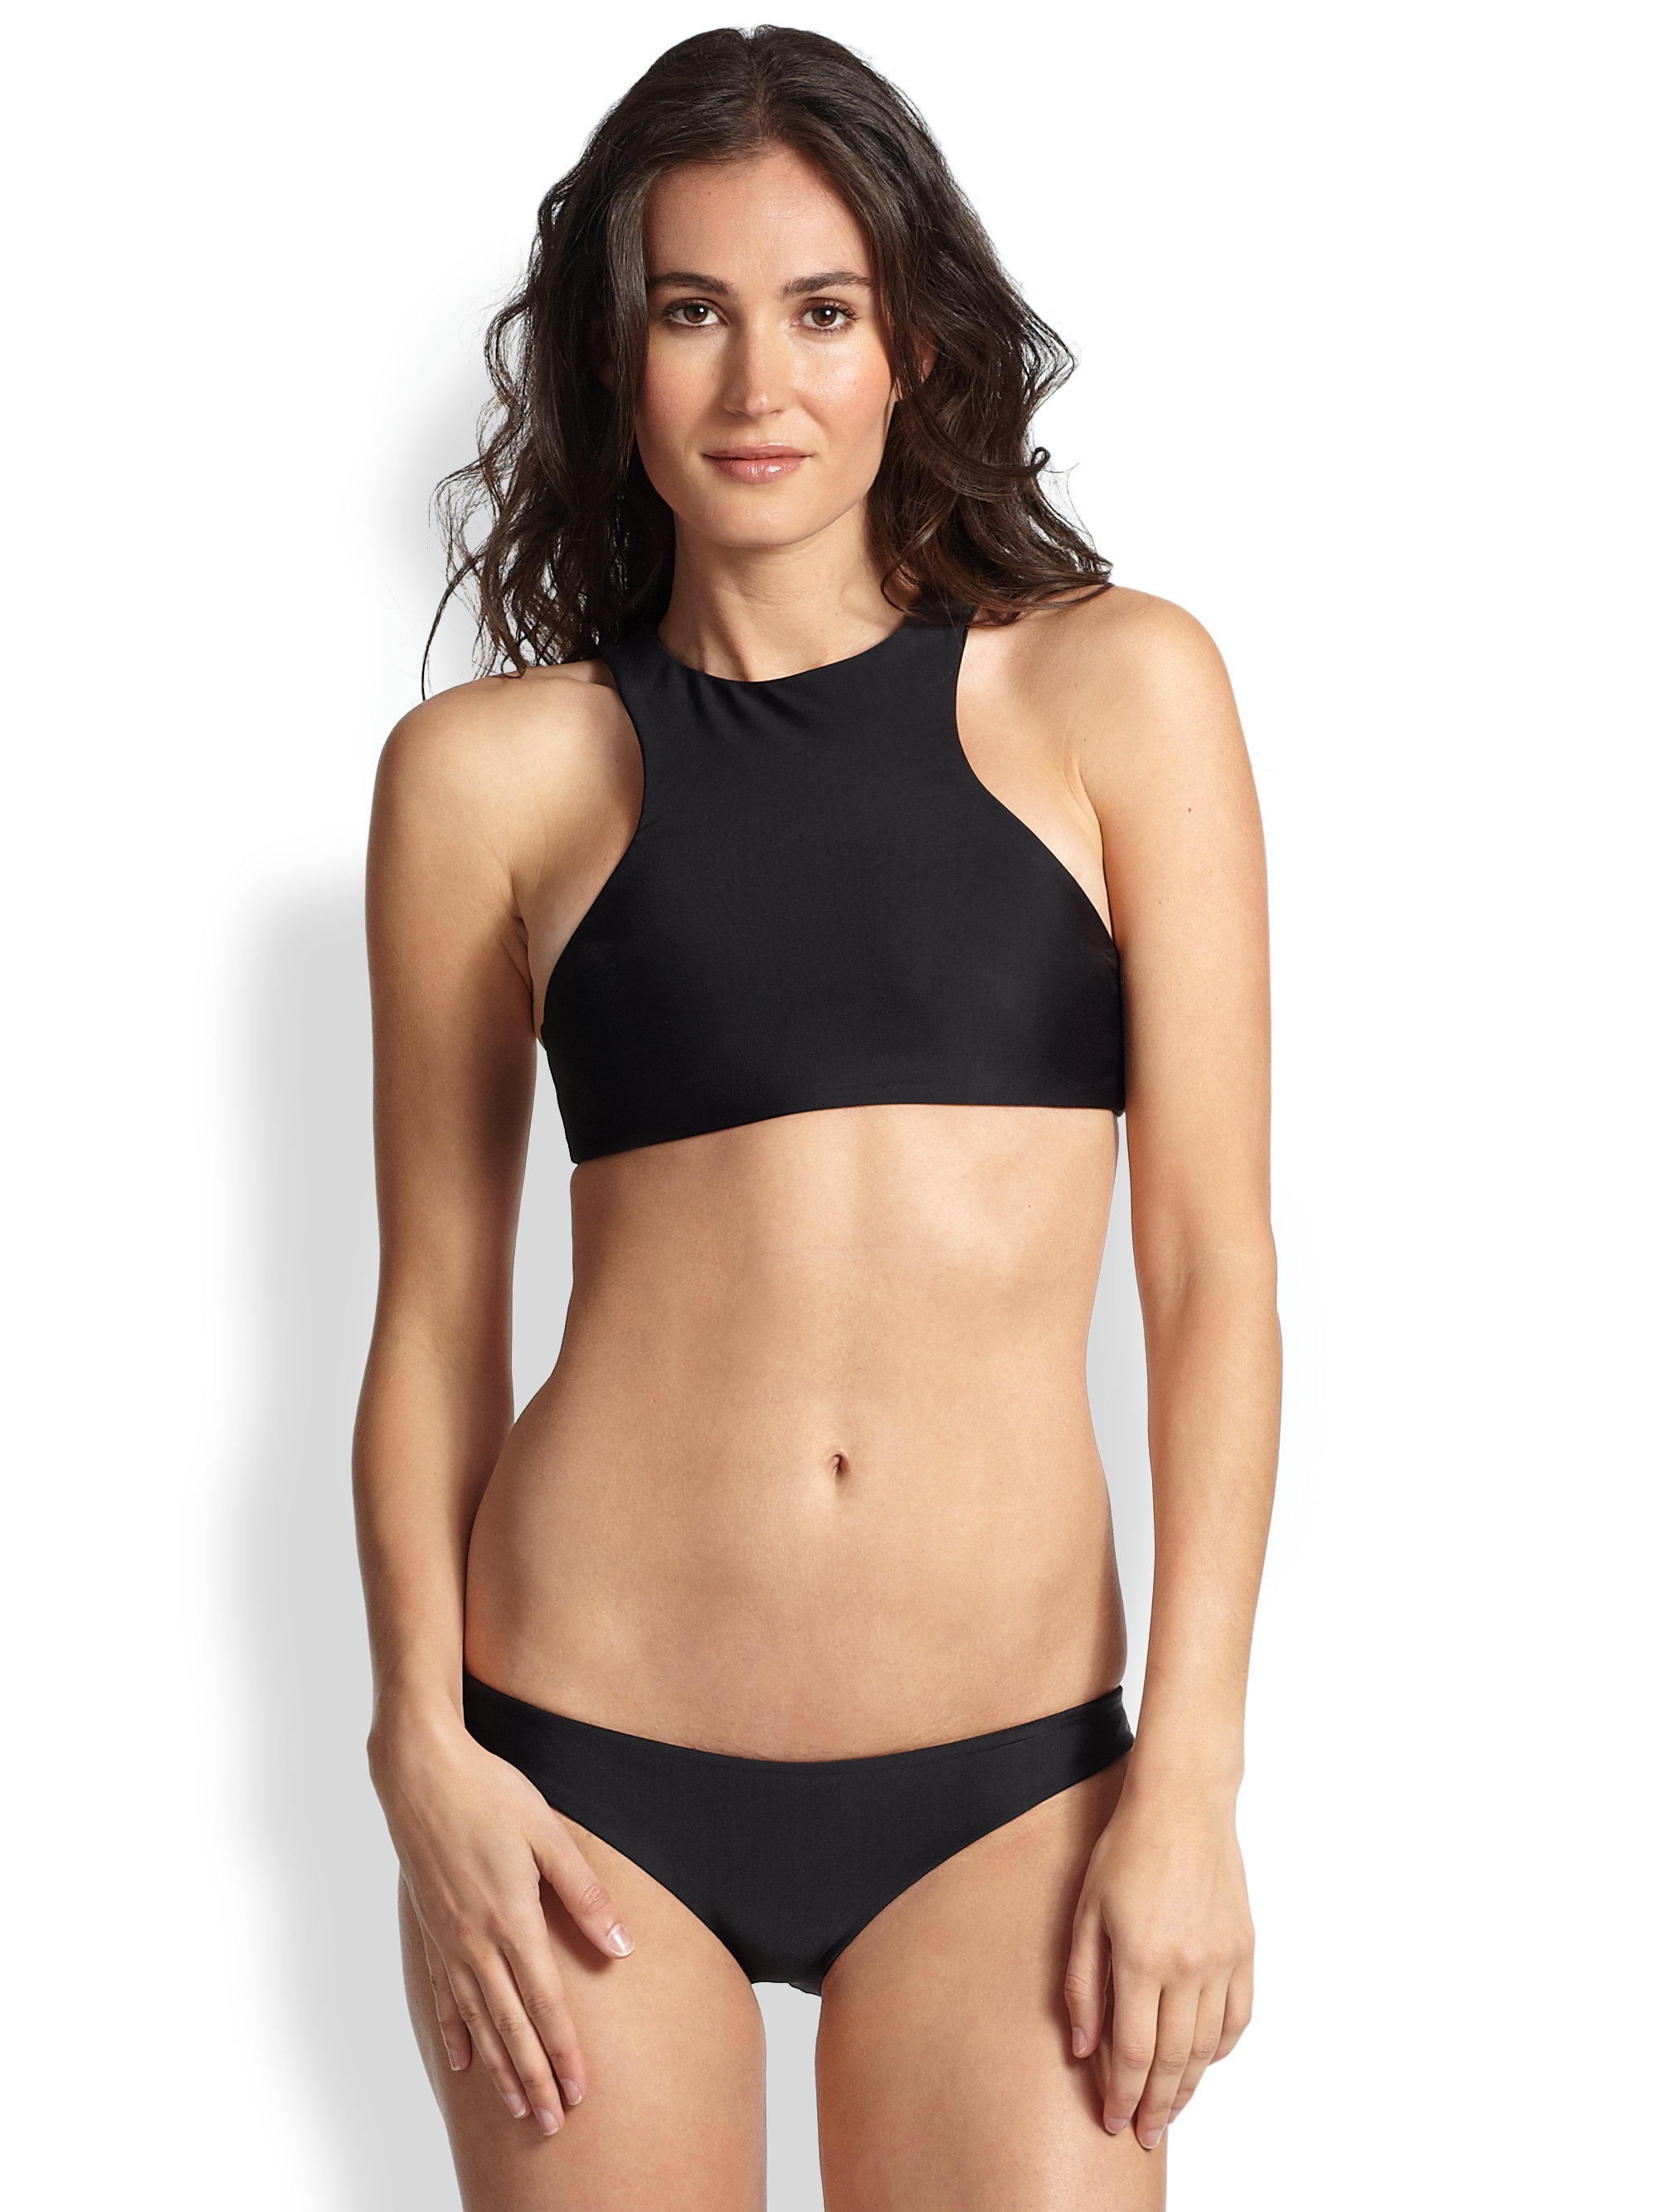 This Donatella Sport Women's Neoprene Bikini Top with Chunky Zipper features a stylish and comfortable design. It is made with a s pandex material for a stretchy fit. The women's bikini top is available in various sizes. read more. See at Walmart. CONNEXITY.